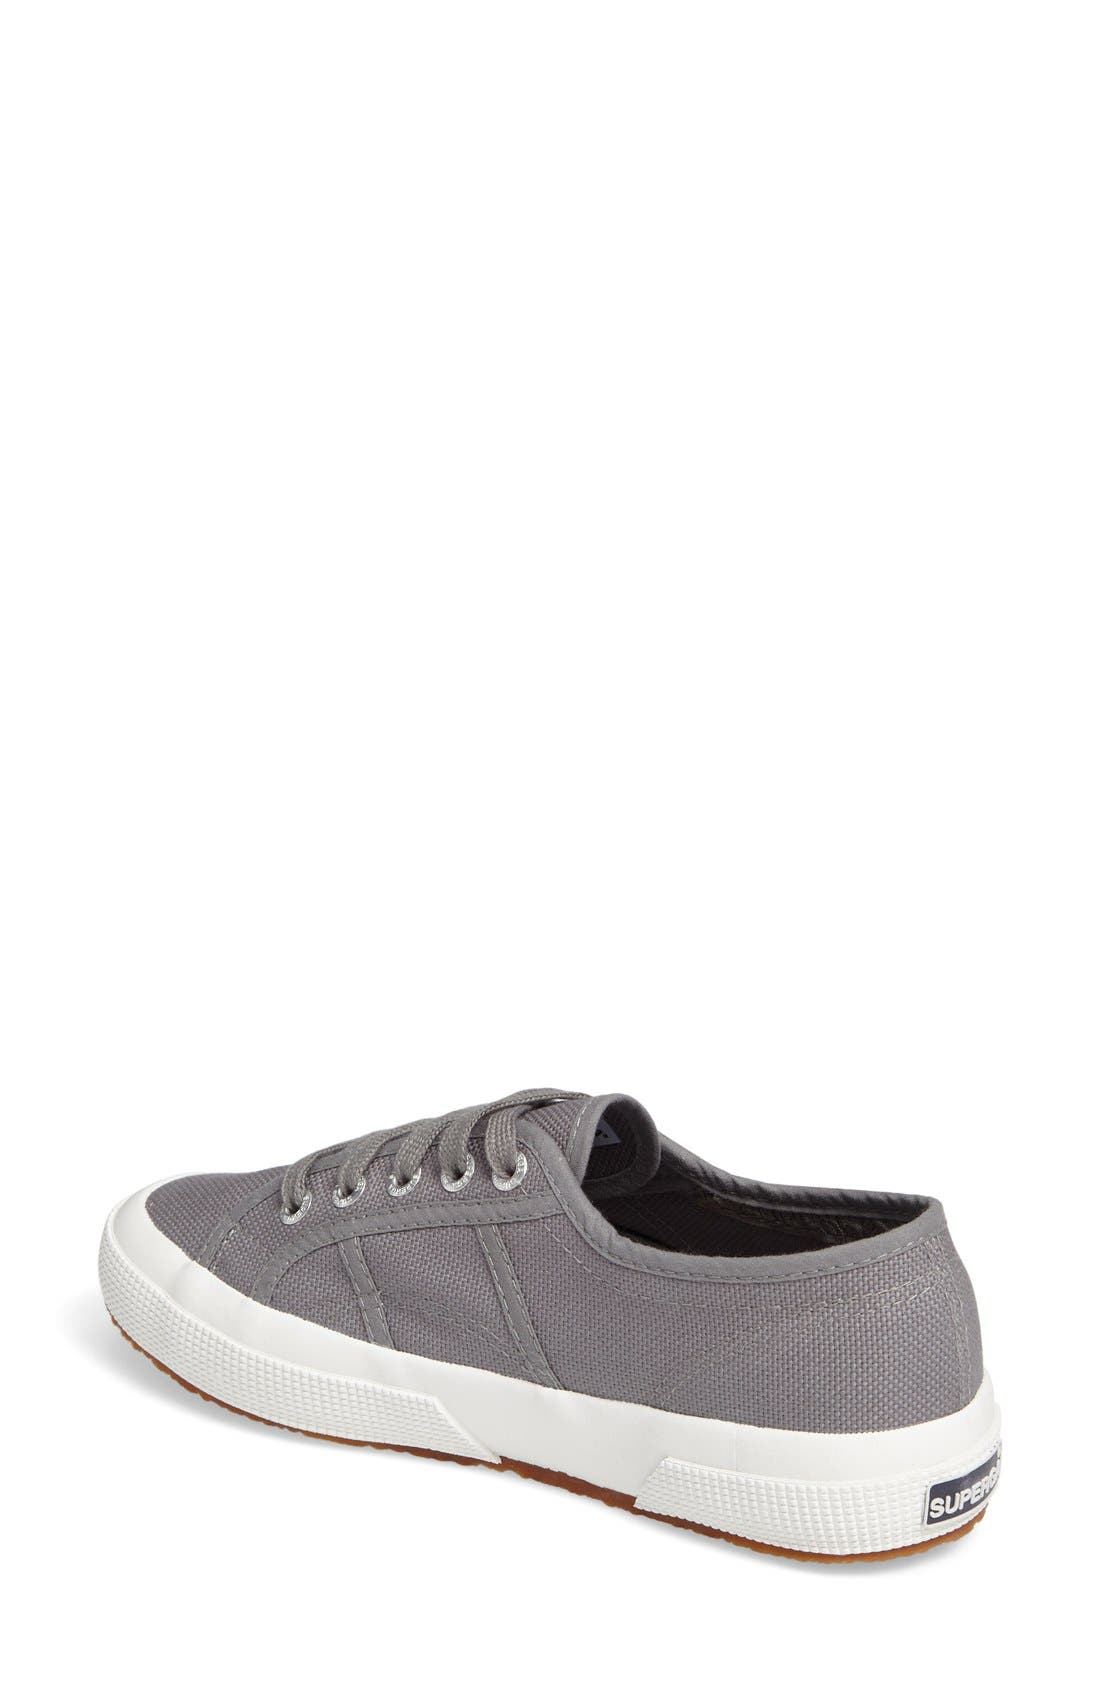 Alternate Image 2  - Superga 'Cotu' Sneaker (Women)